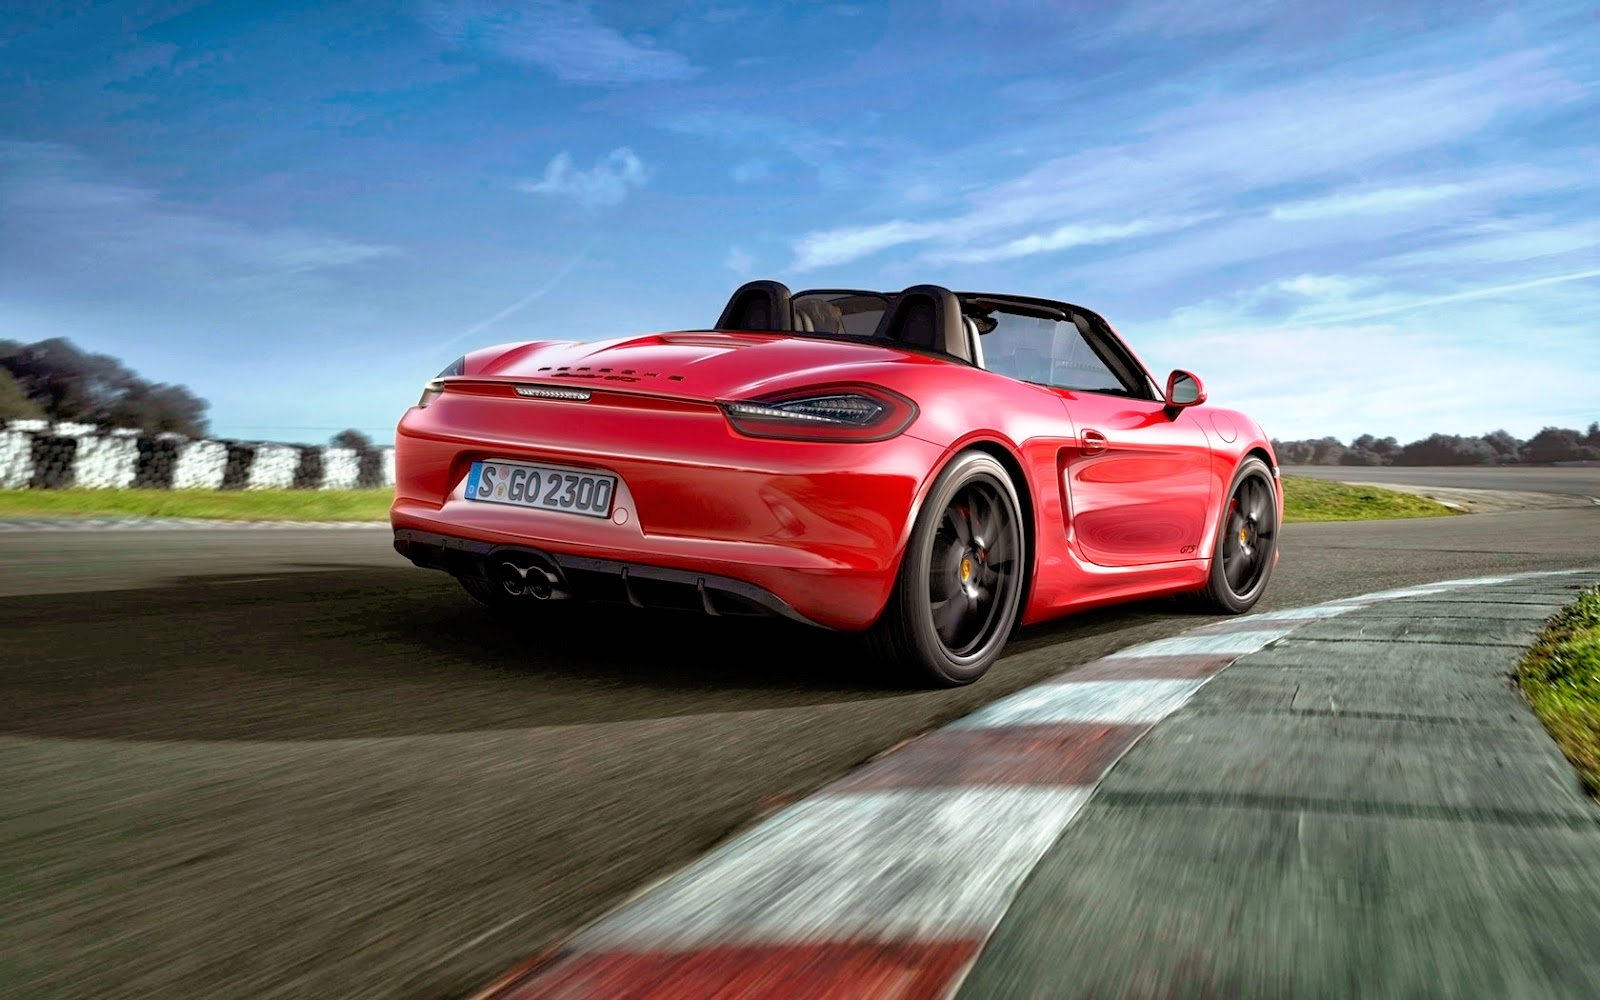 2014 porsche boxster gts cayman gts news hot car. Black Bedroom Furniture Sets. Home Design Ideas